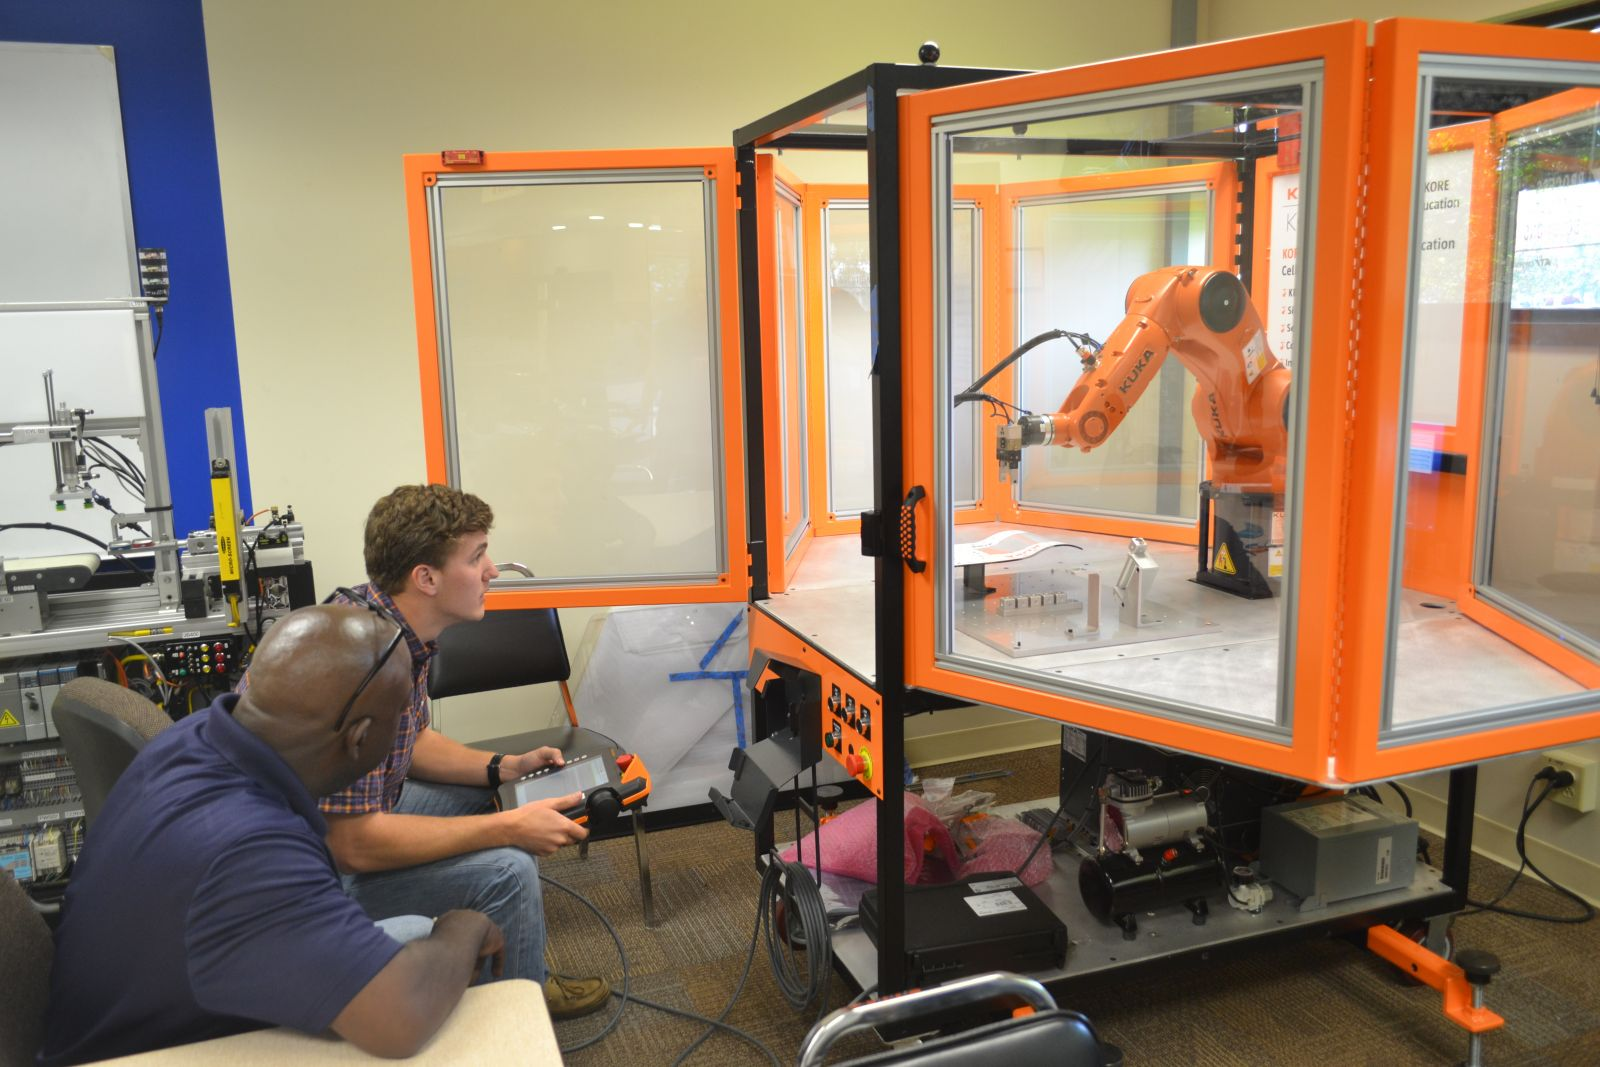 PA Solutions employees, from left, William Lloyd and Keaton Walker, train on the Kuka industrial robot that will be incorporated into classes at ECPI University Greenville. (Photo by Teresa Cutlip)